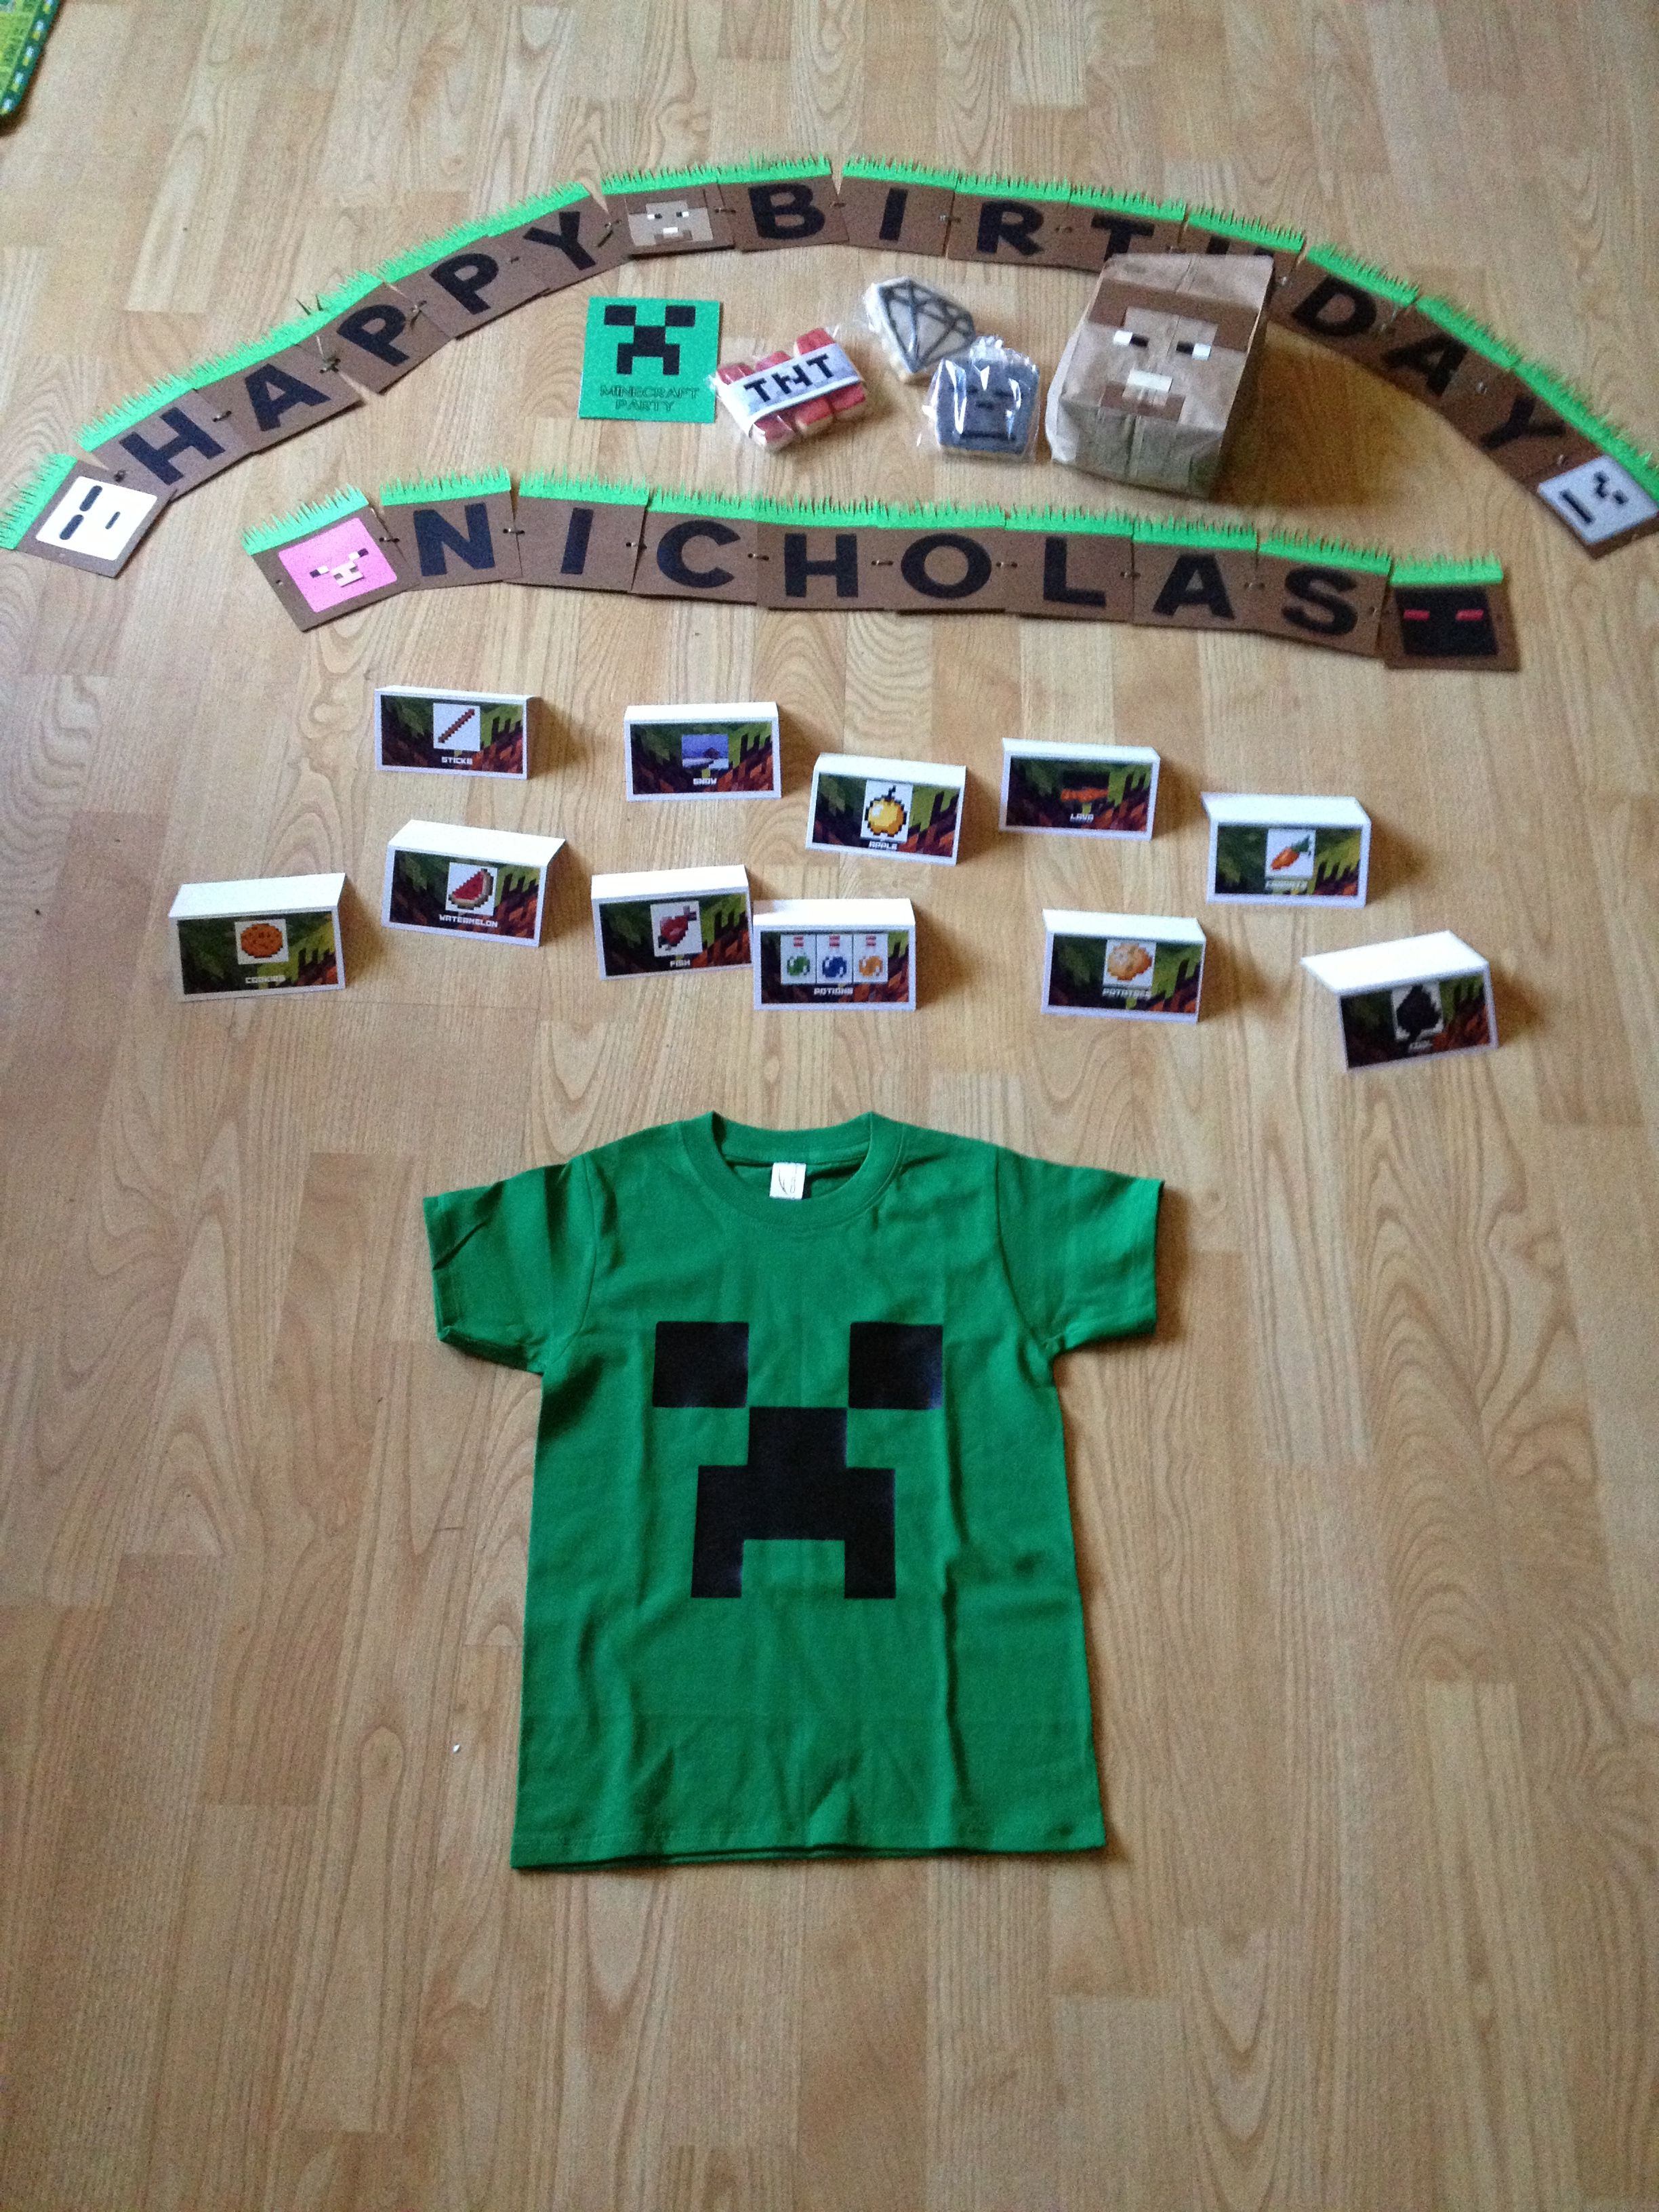 Minecraft Party Invites Banner Favor Bags And Shirt Made With